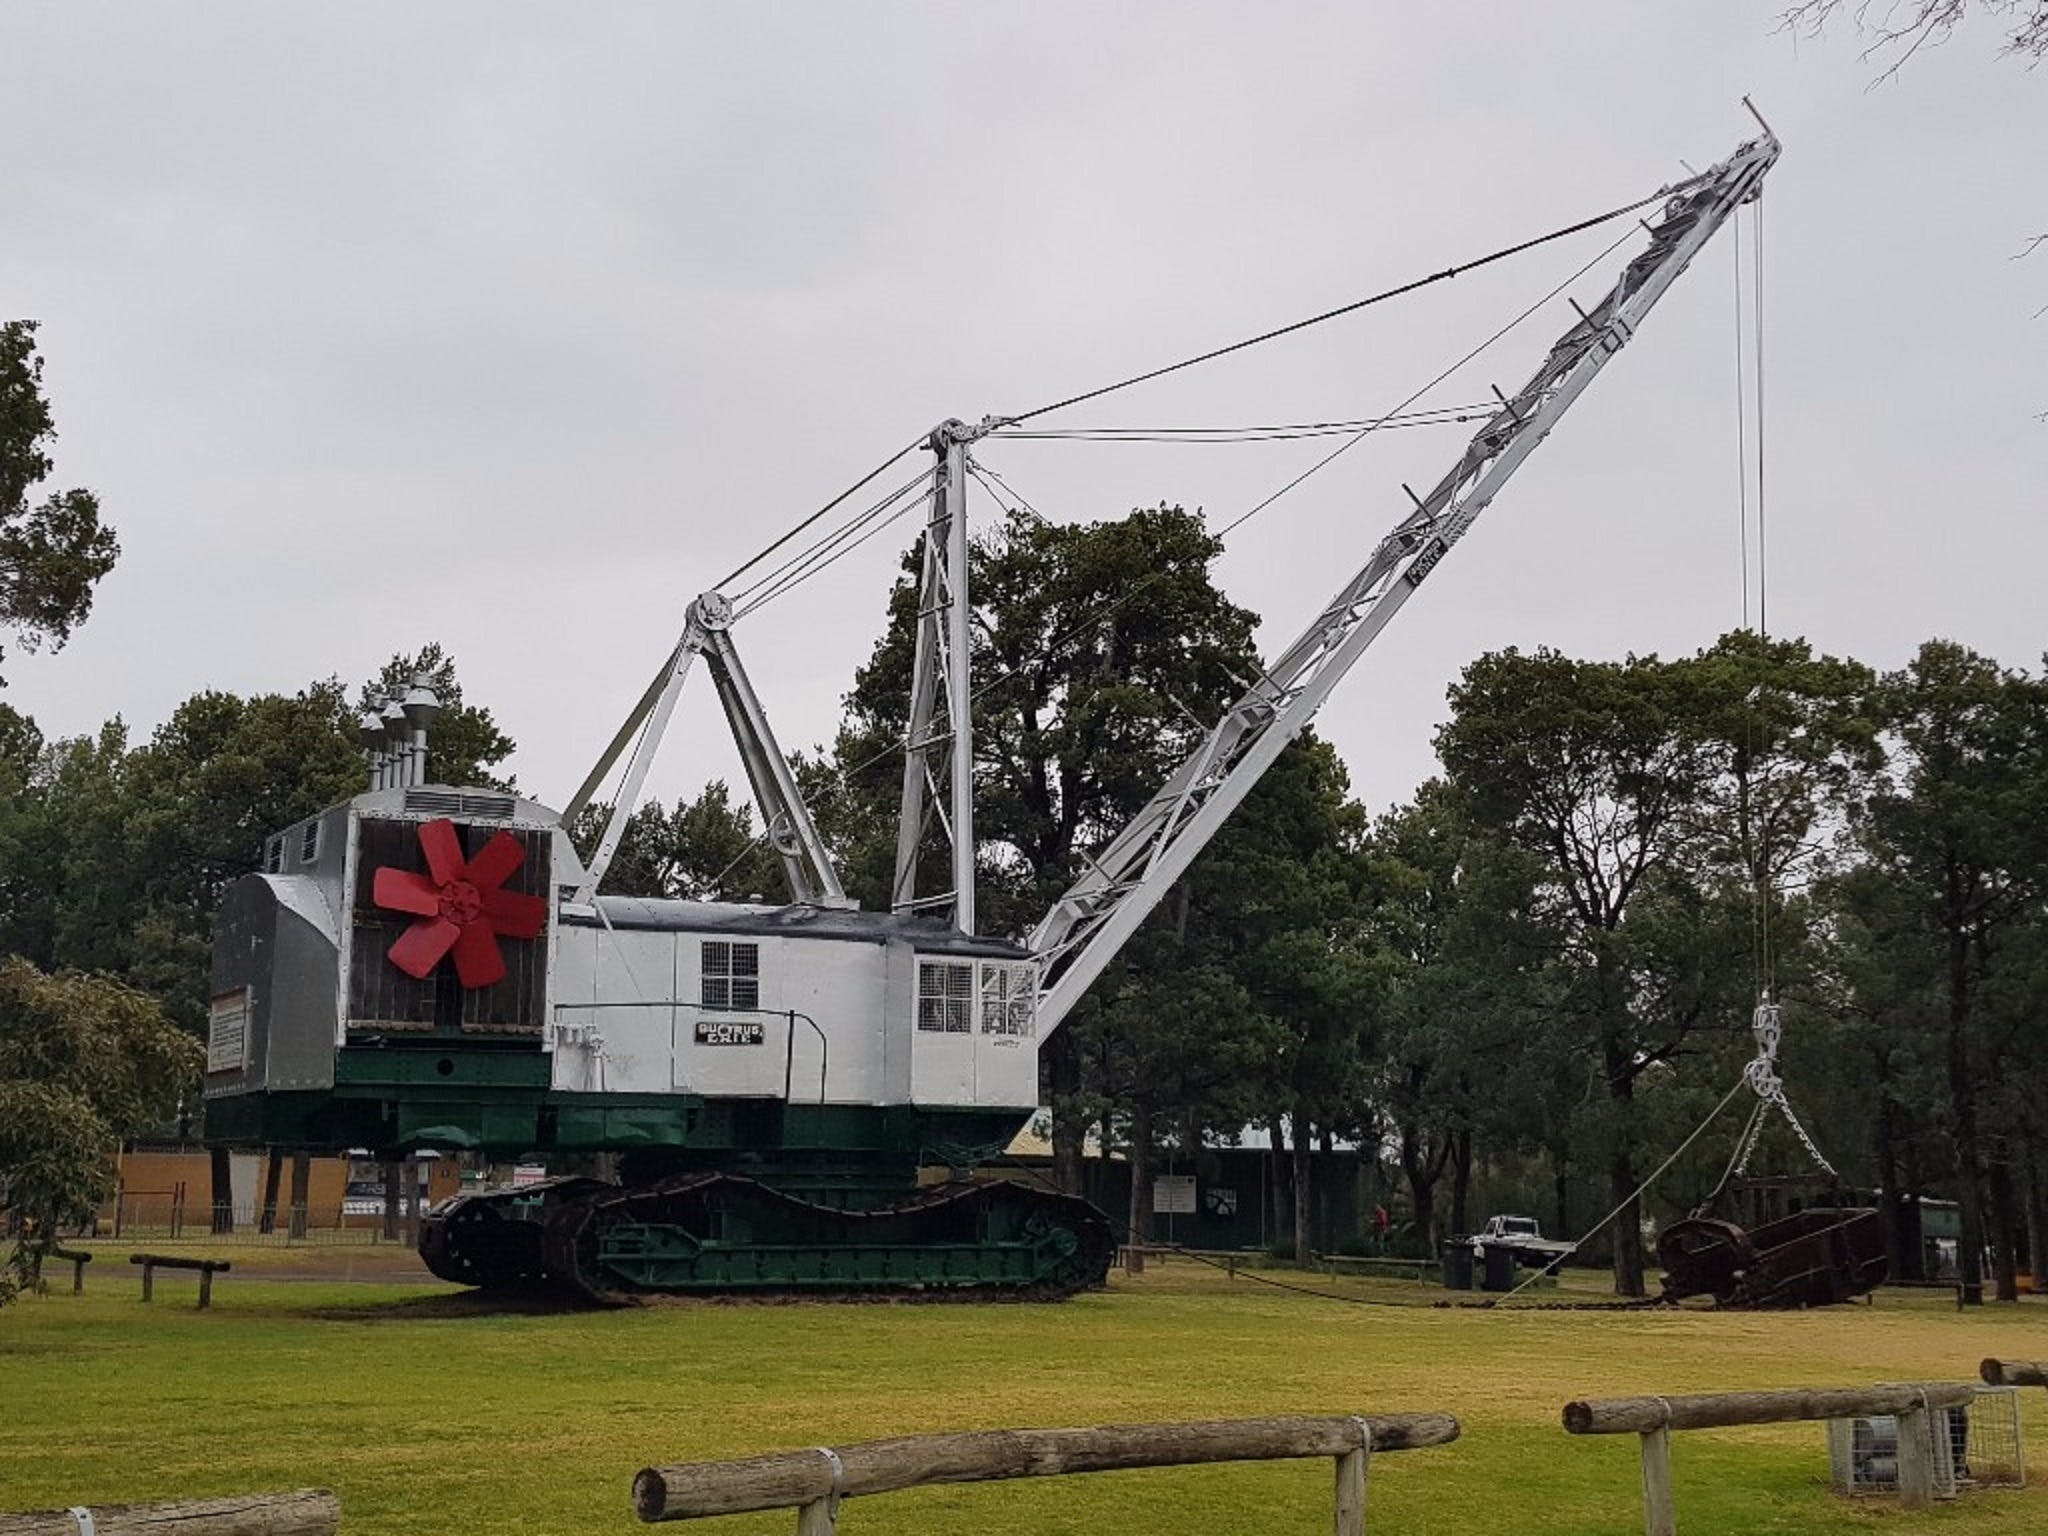 Coleambally Bucyrus Erie Dragline Excavator - Tourism Bookings WA